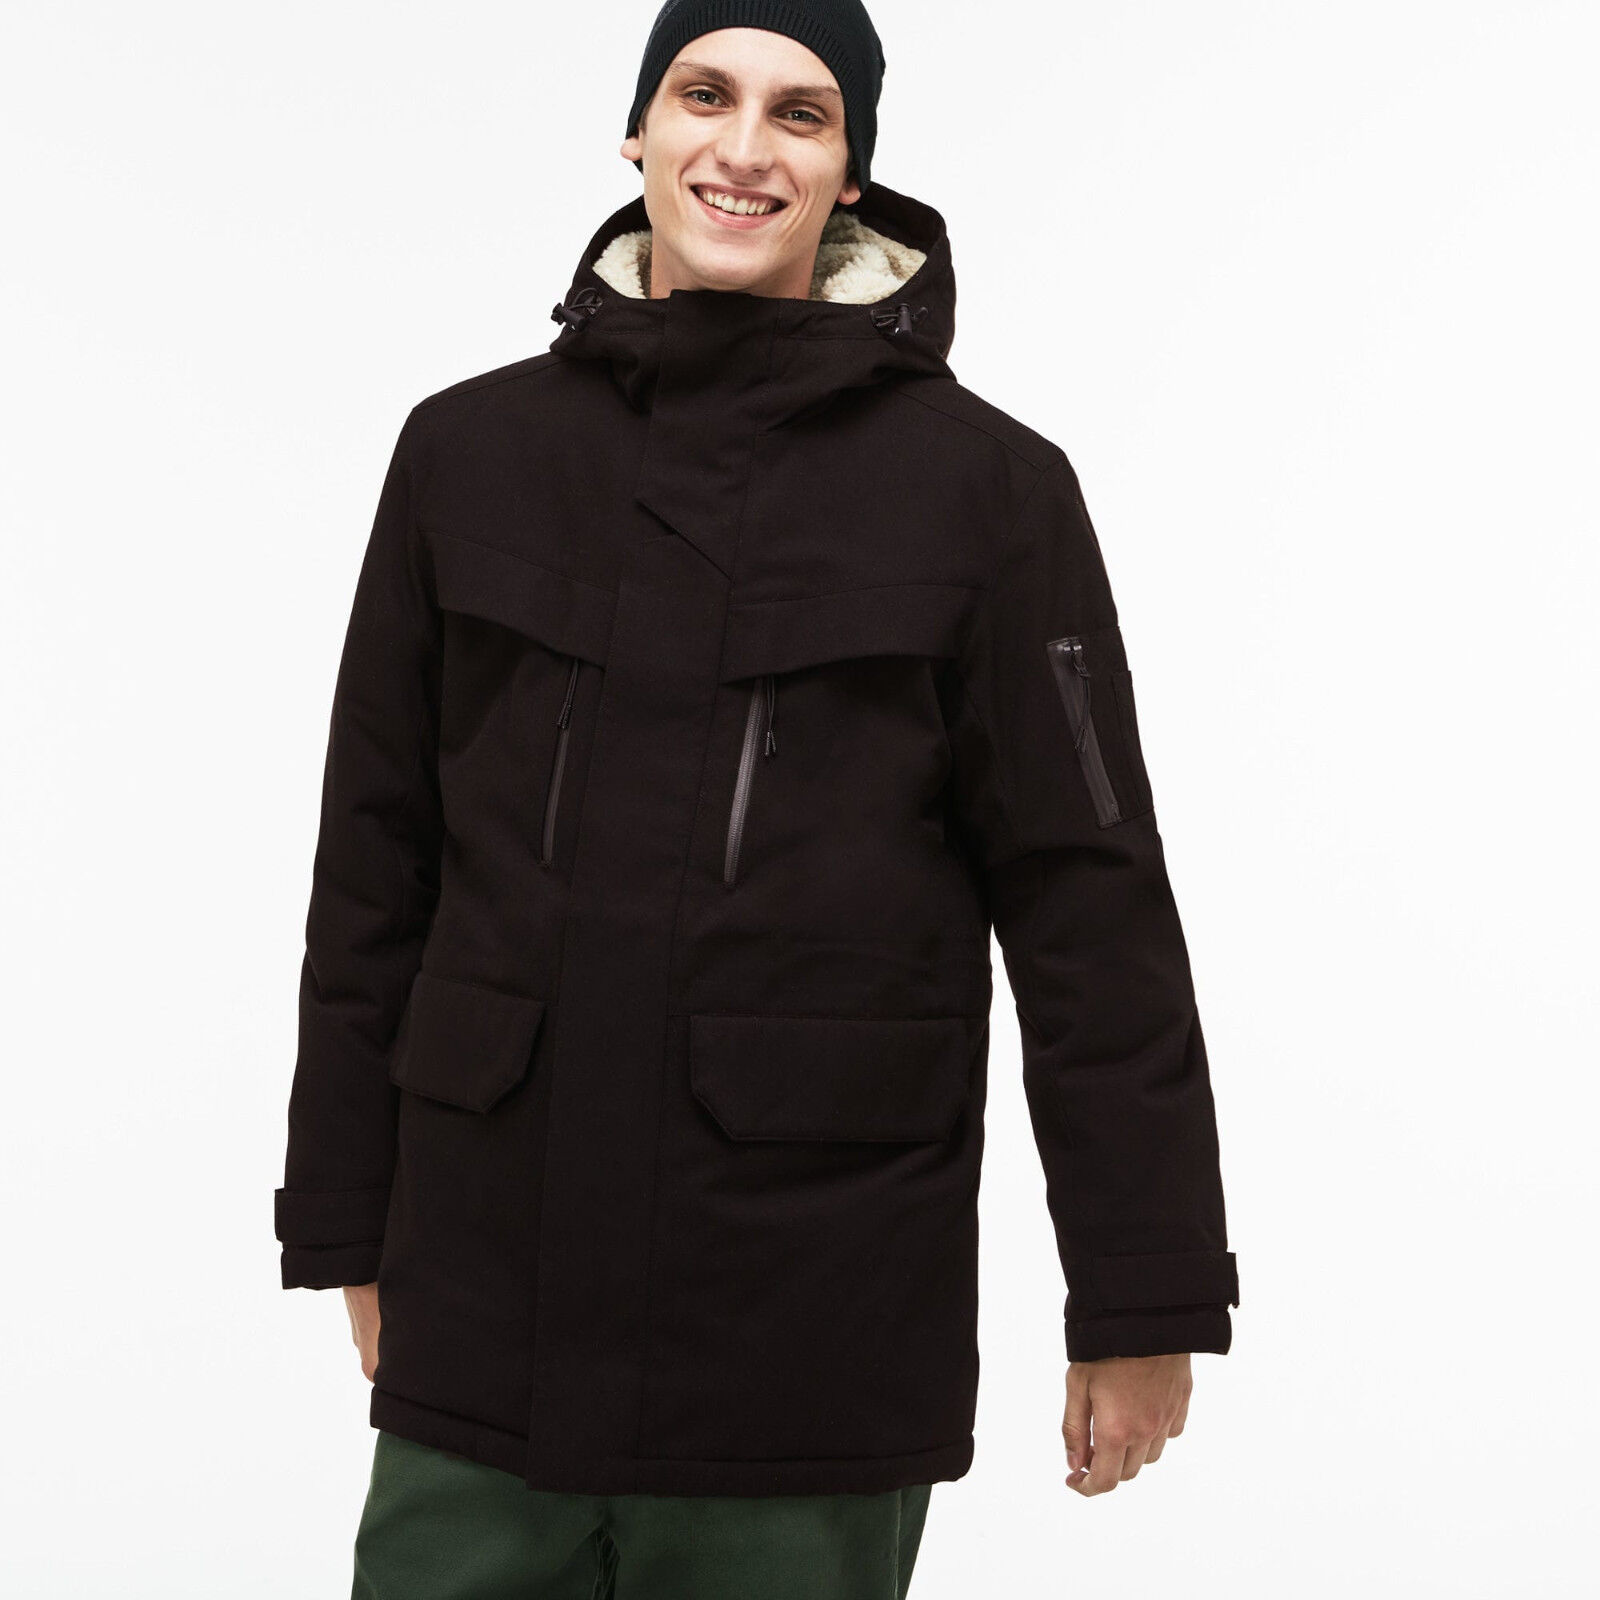 Lacoste NWT Men's Stylish and Warm Hooded Faux Fur Lined  Closeout Sales